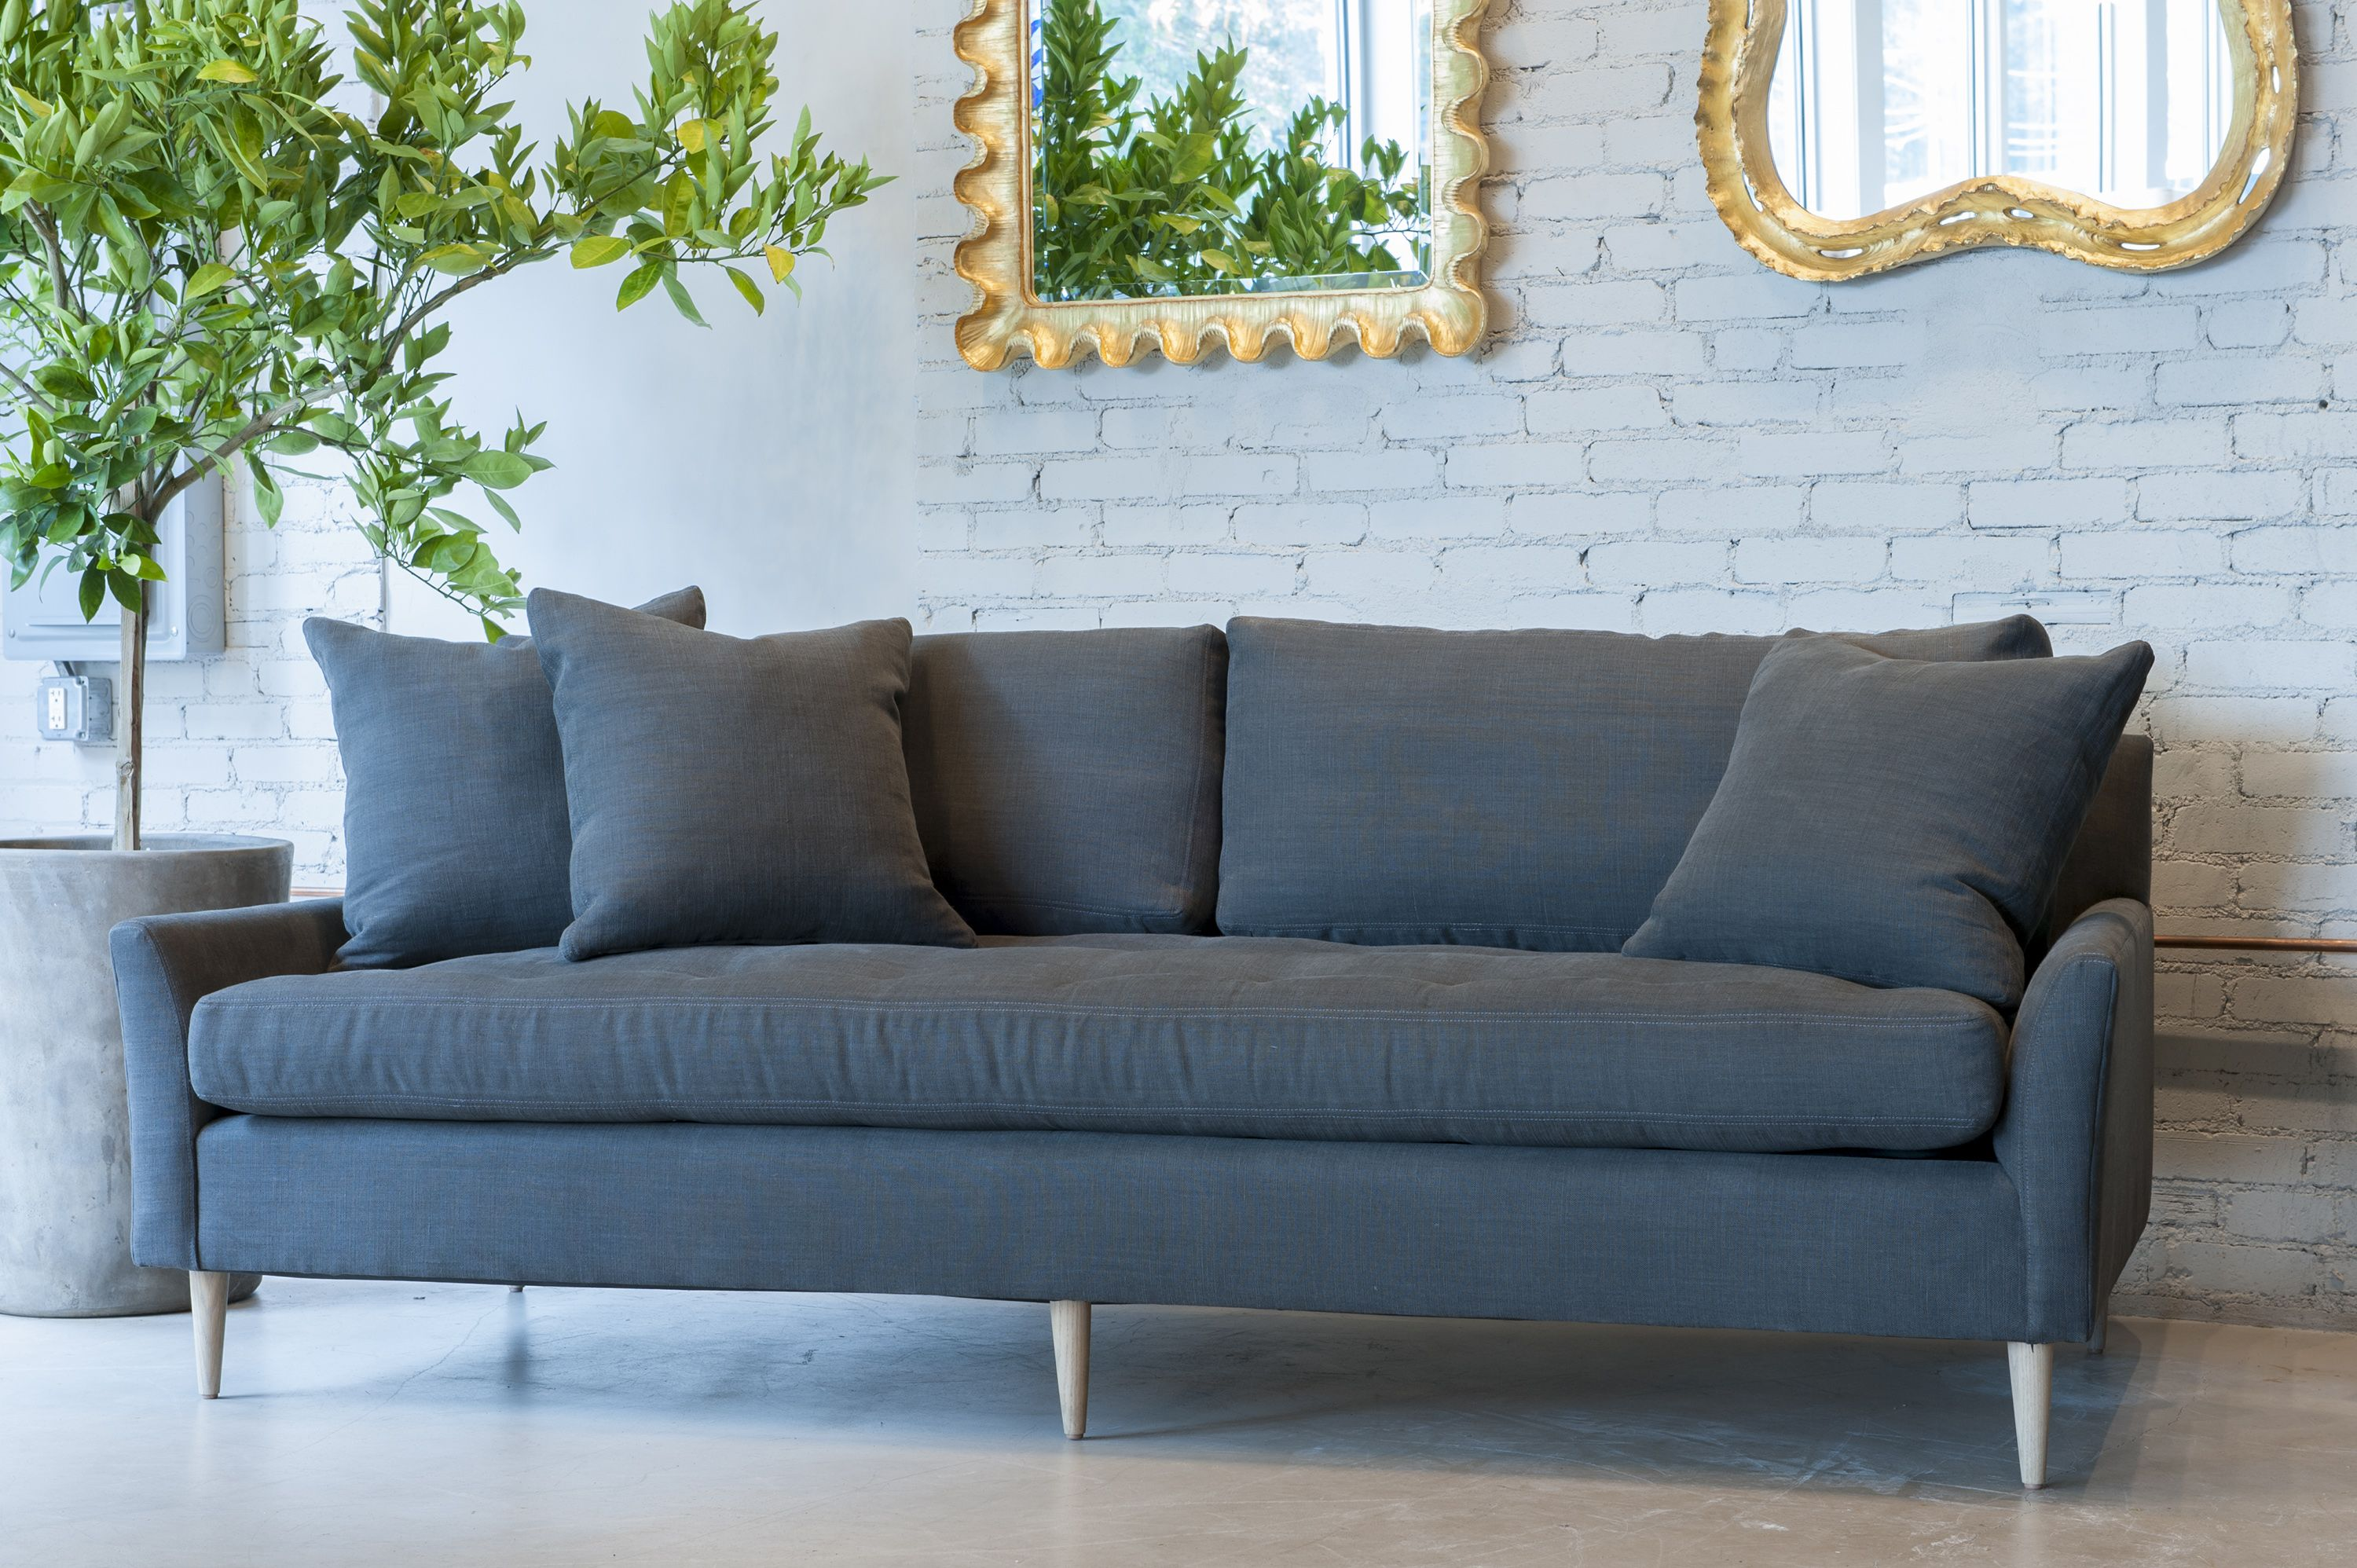 Blanche Sofa from Verellen in Lux Linen tufted seat